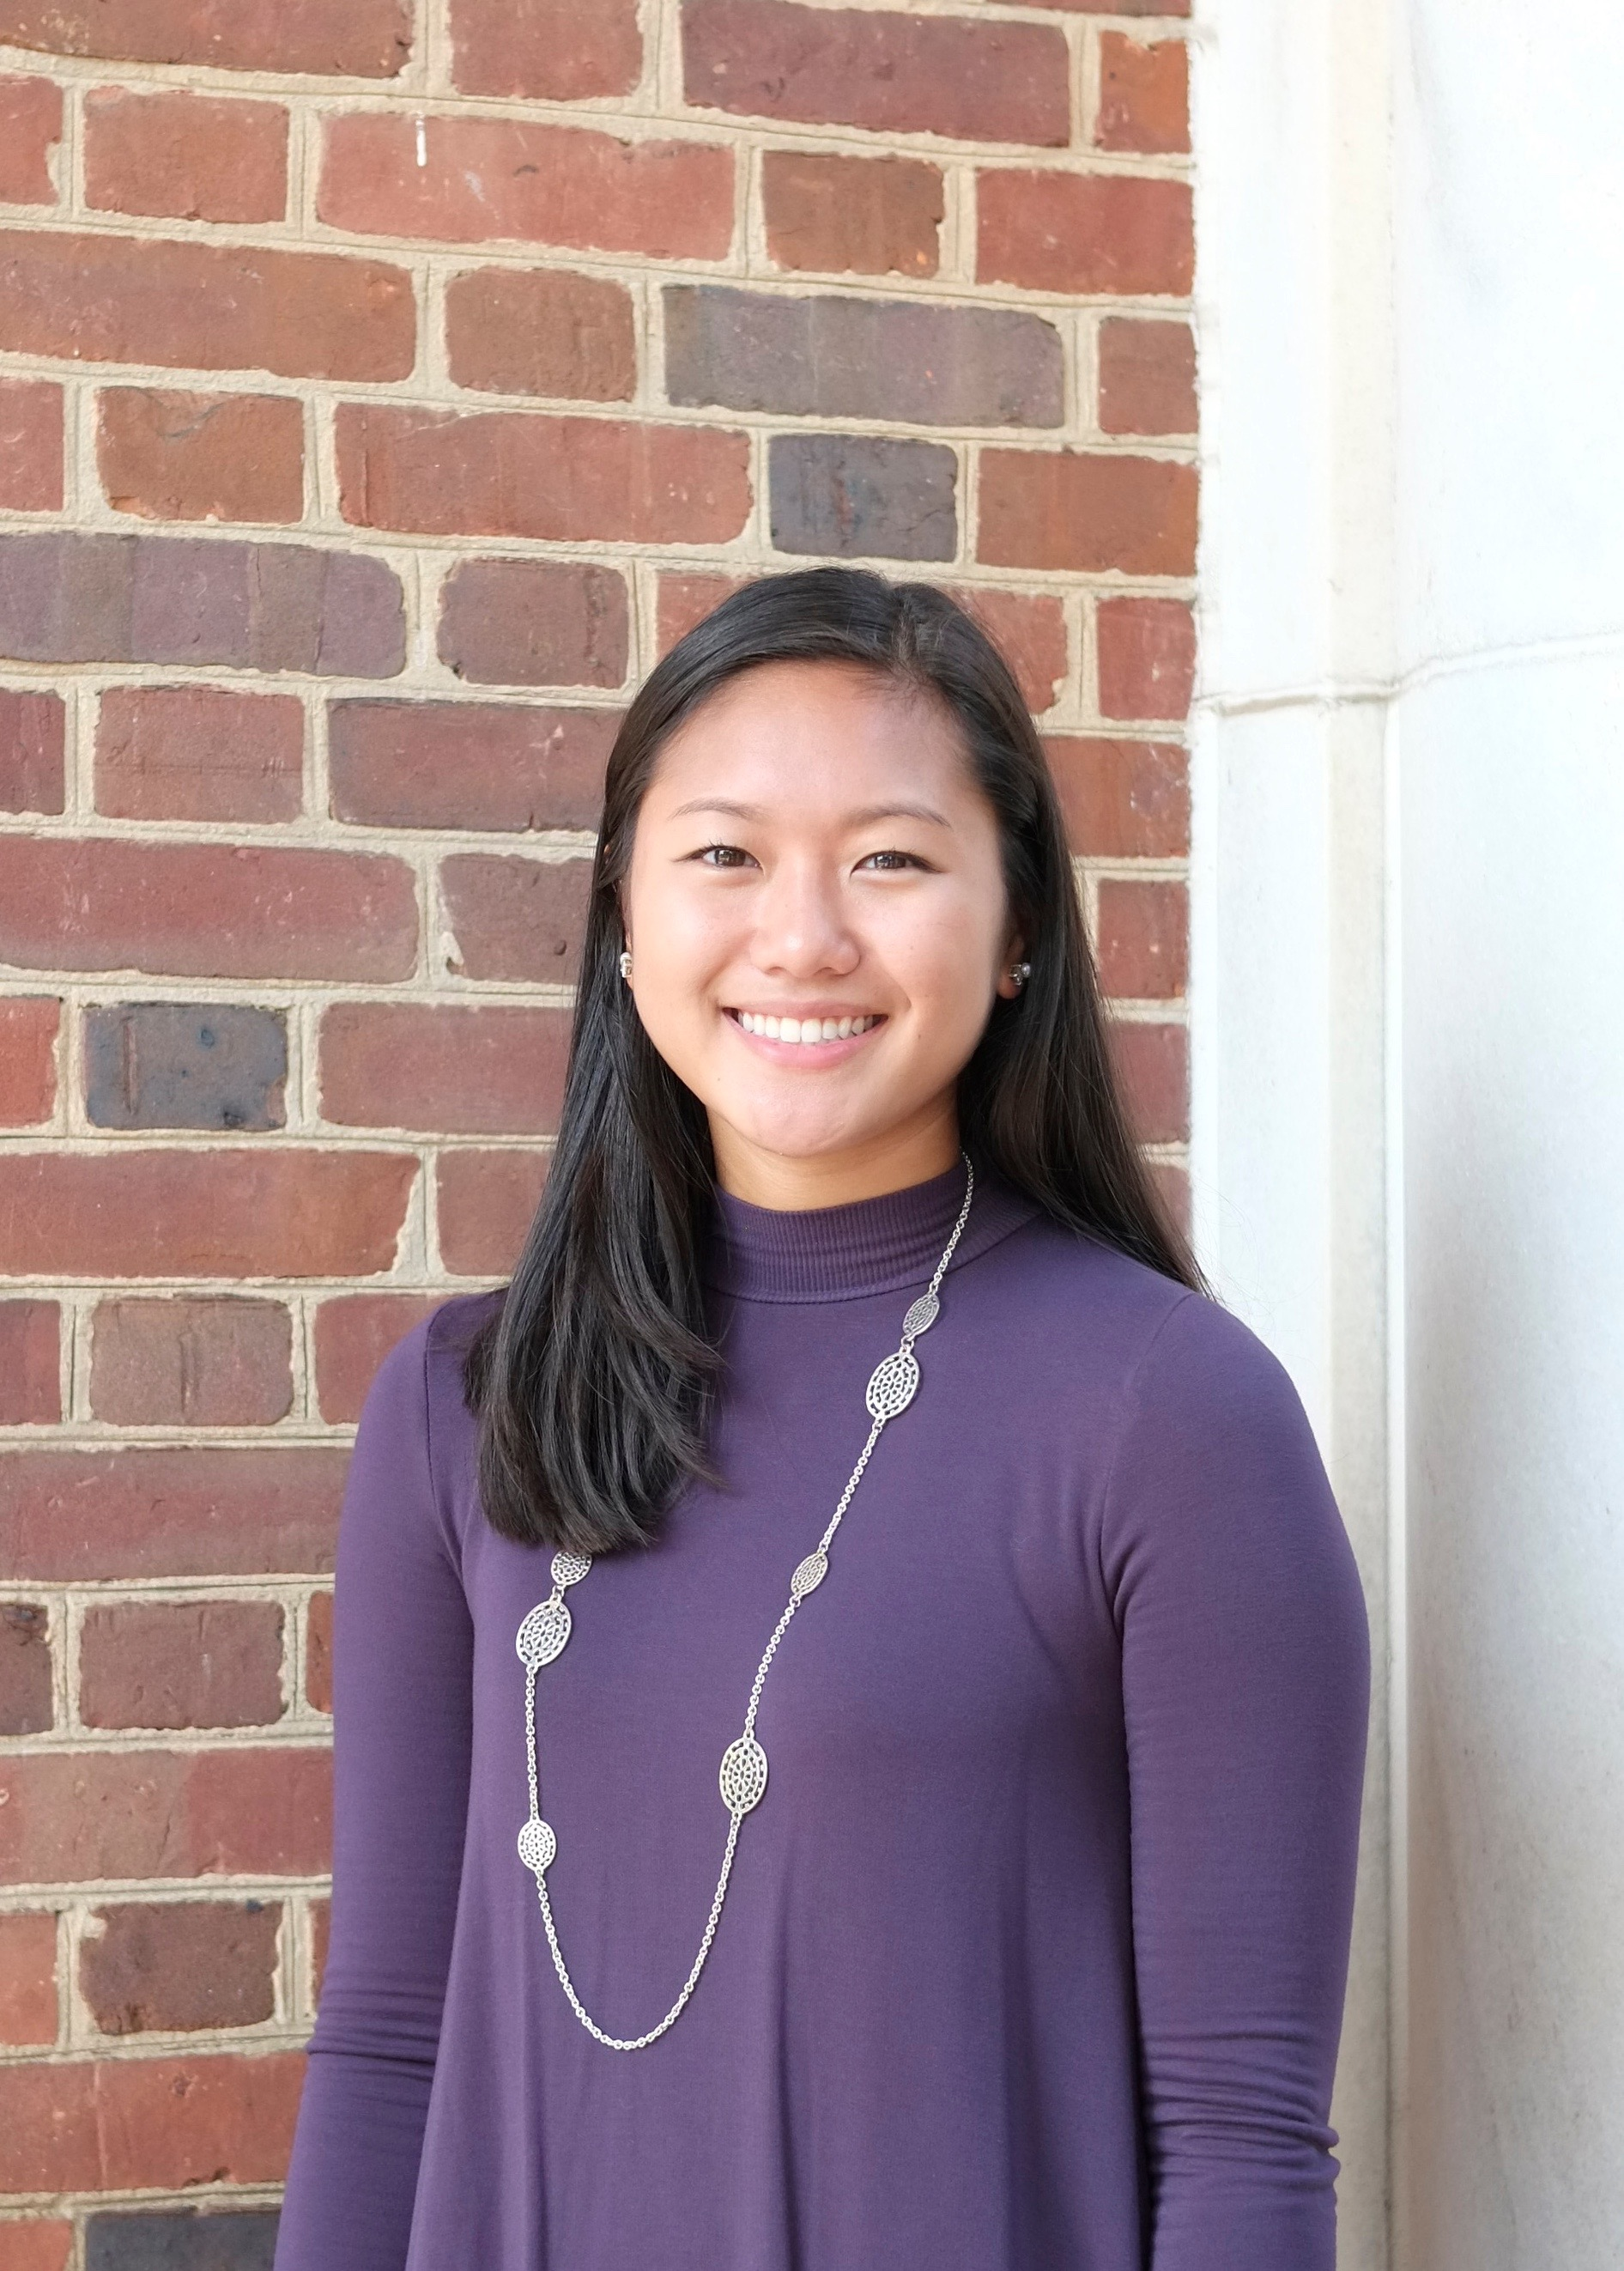 Vice-President: Rachel Yuh - Rachel Yuh is an Applied Math & Statistics major with a minor in Entrepreneurship & Management and Accounting & Financial Management in the class of 2020. She currently serves on the exec board of Women in Business as the Vice President, and has served as the Co-Public Relations Chair in the past. Outside of Women in Business, Rachel is involved in the Hopkins Hosting Society, Club Volleyball Team, Blue Key Society, and several other clubs on campus.